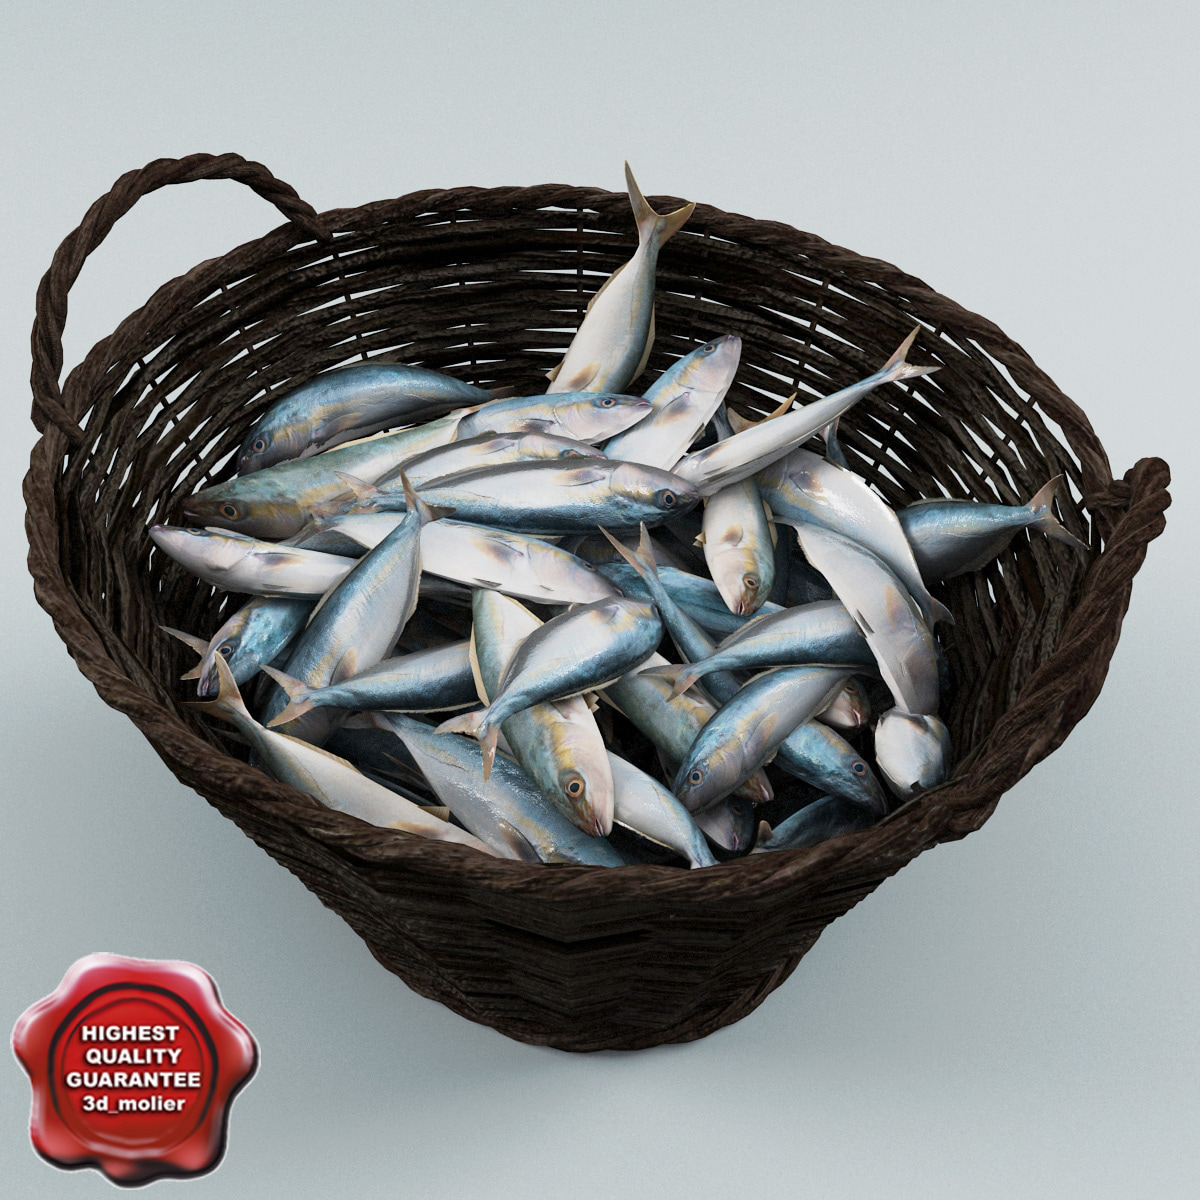 max fish wicker basket